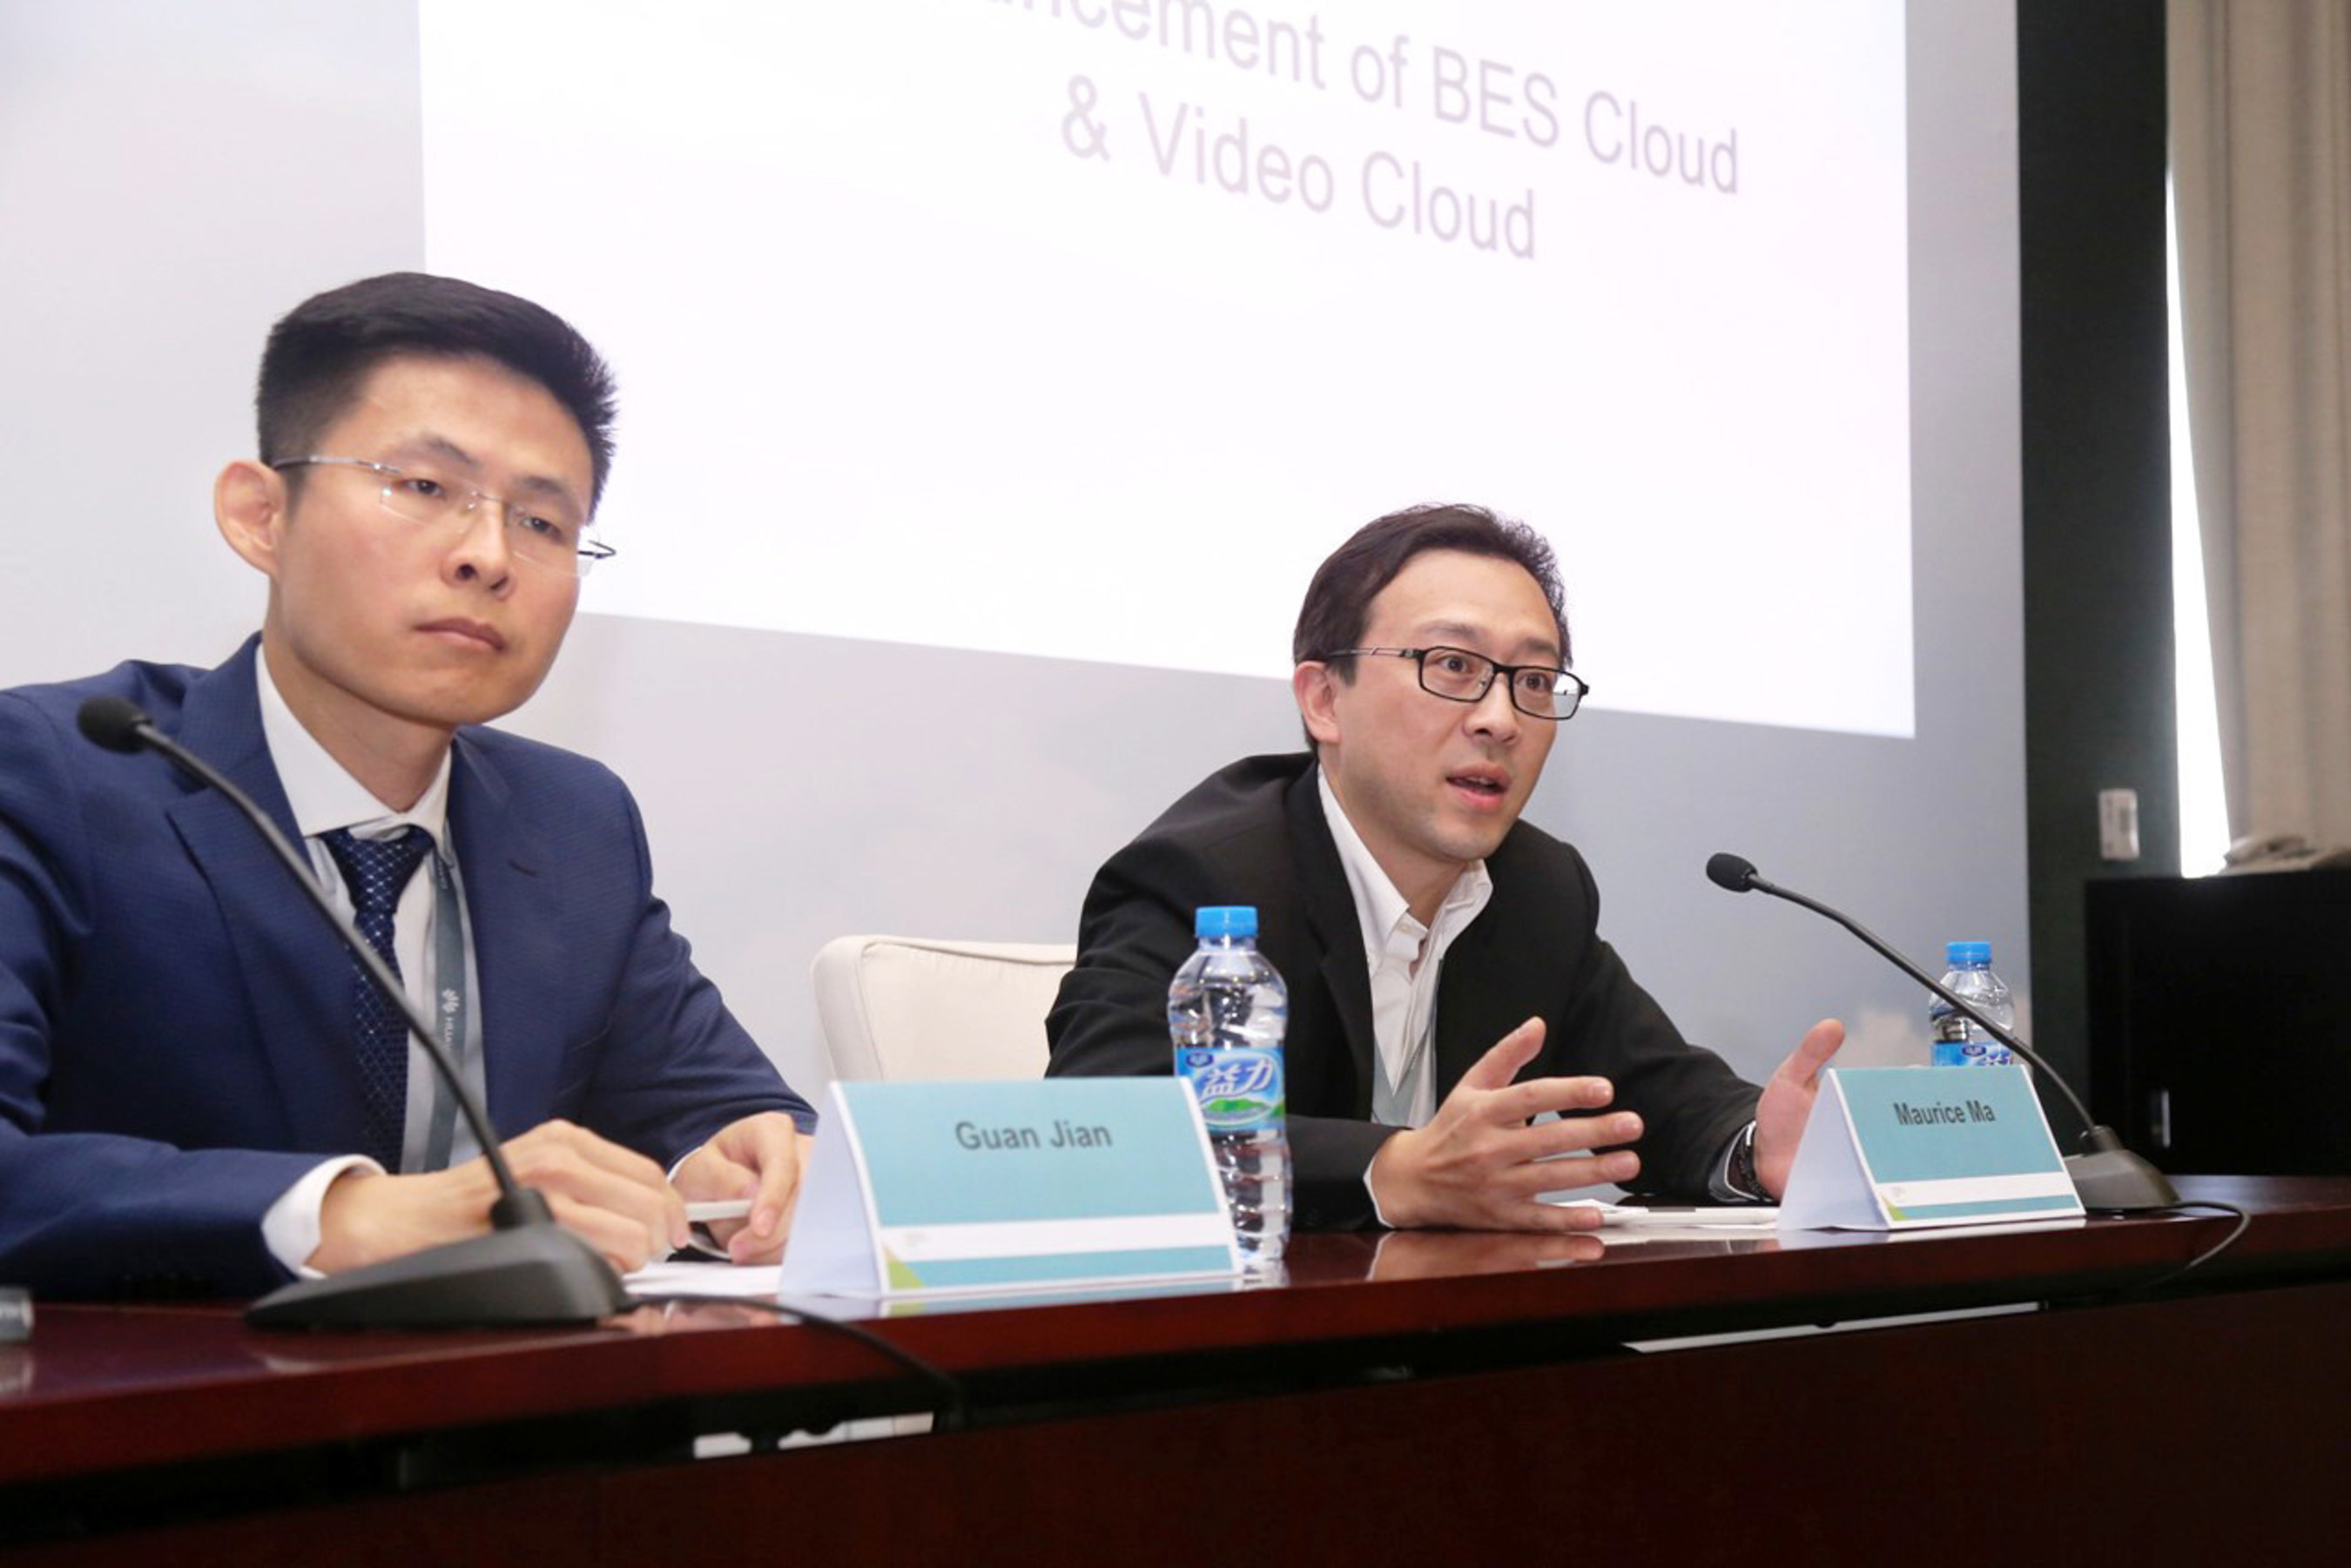 Maurice Ma (right), VP of Huawei Carrier Software BU and Jian Guan (left), General Manager of BES as a Service Product, Huawei Carrier Software BU, answer the journalists' questions